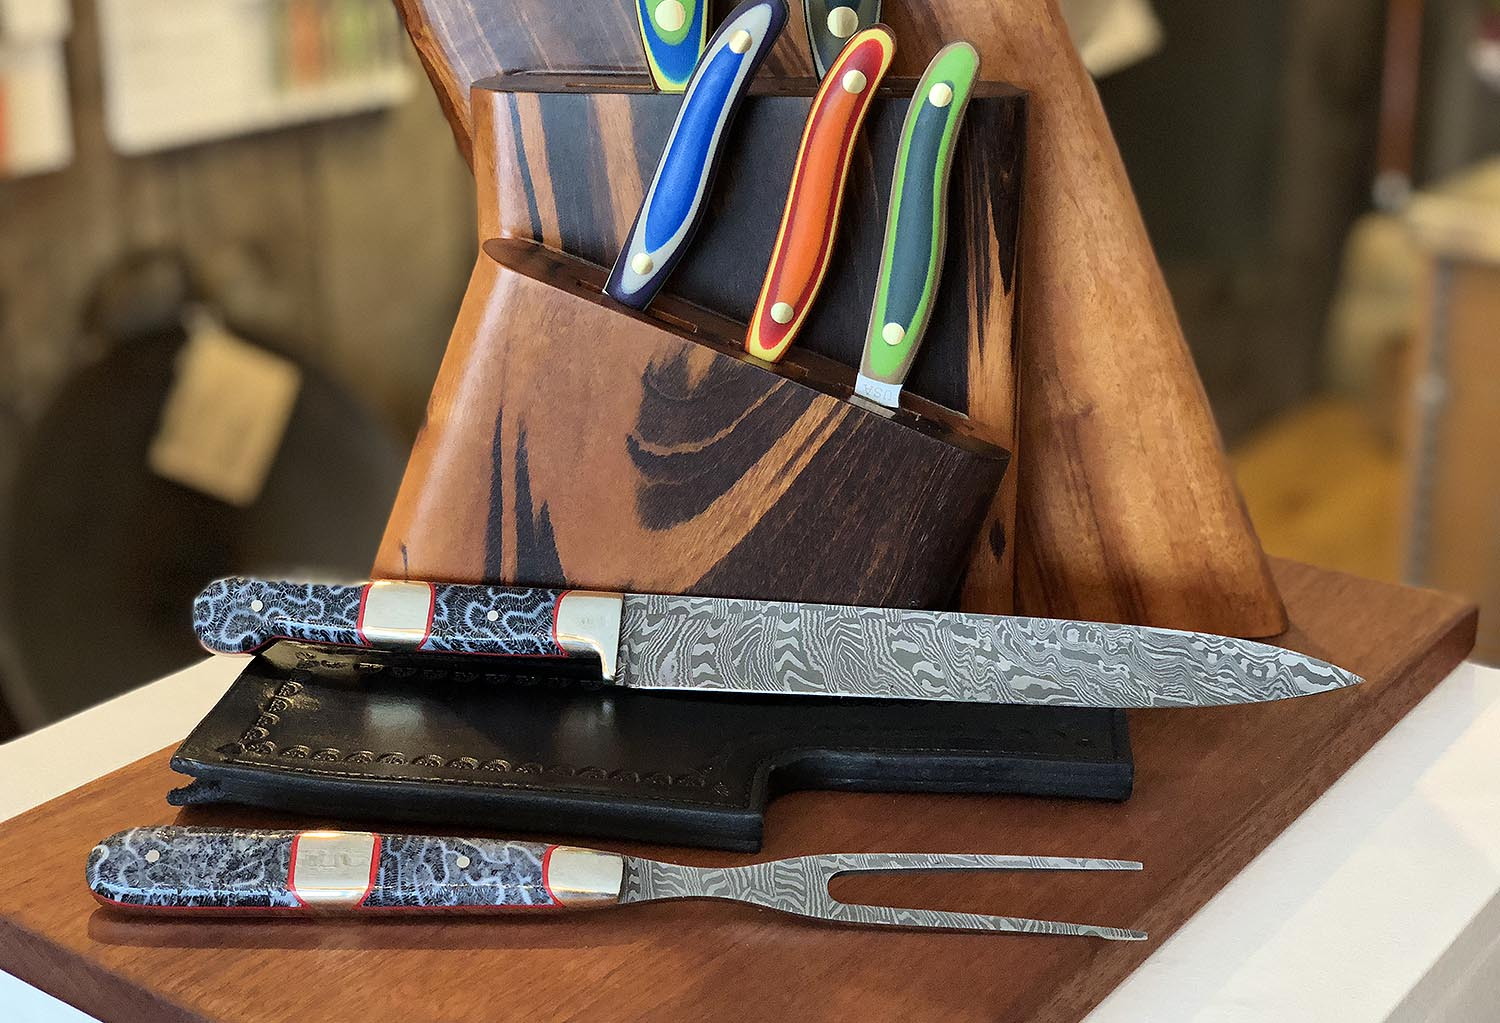 Brian Coral - New West Knifeworks - Jackson Hole